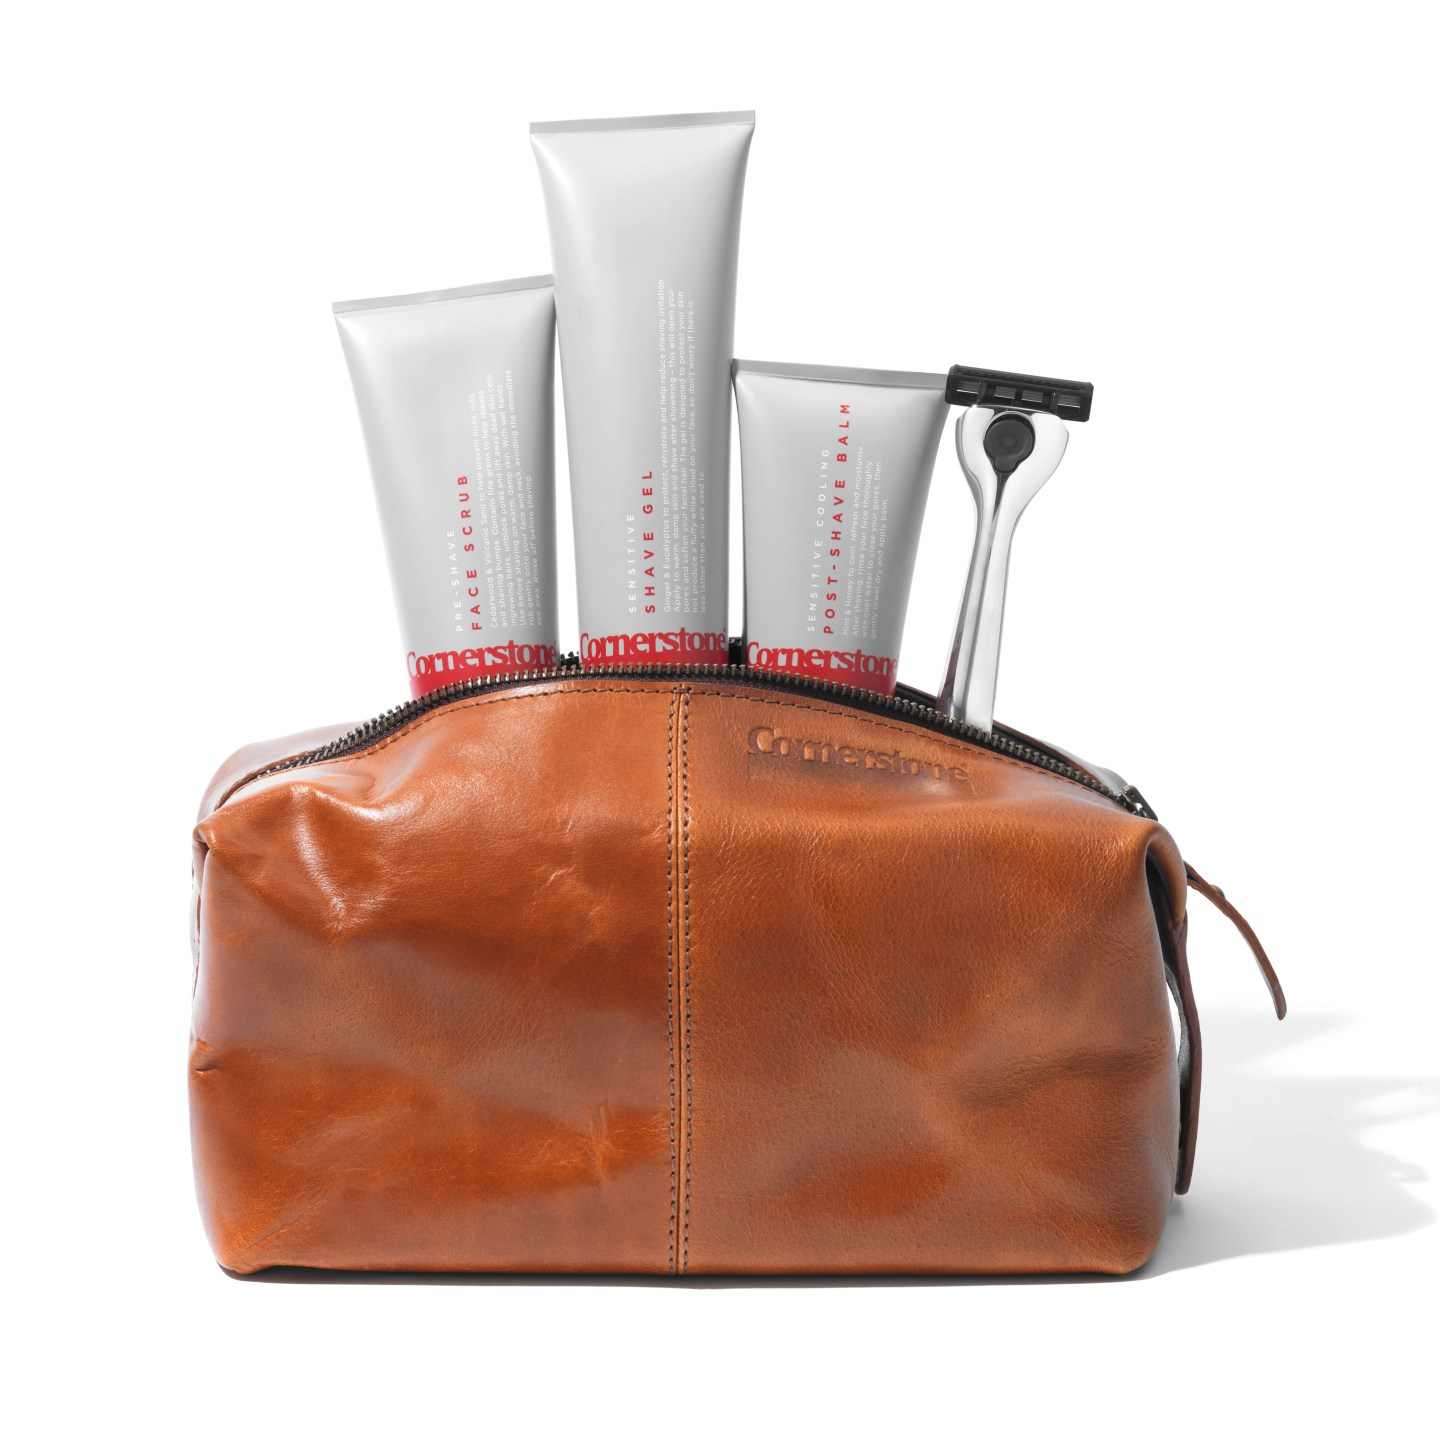 Packing Your Grooming Essentials when Travelling